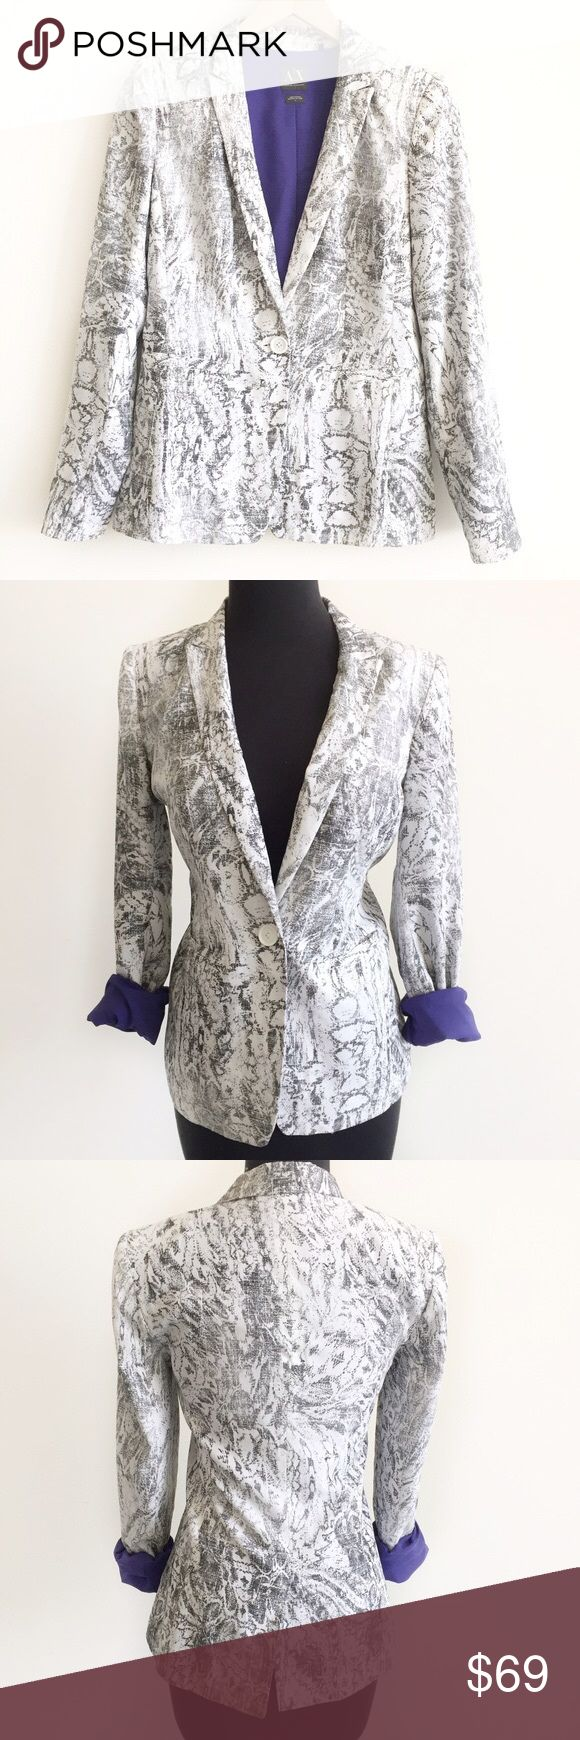 """Armani Exchange Carey Floral Sketch Print Jacket Stylish blazer from Armani Exchange in black and white floral sketch print. Features notched lapel, single button closure, hips pockets, long sleeve and back slit. Fully lined in blue fabric. Can be worn with sleeves rolled up for a pop of color.   • size 2 • 34"""" bust 